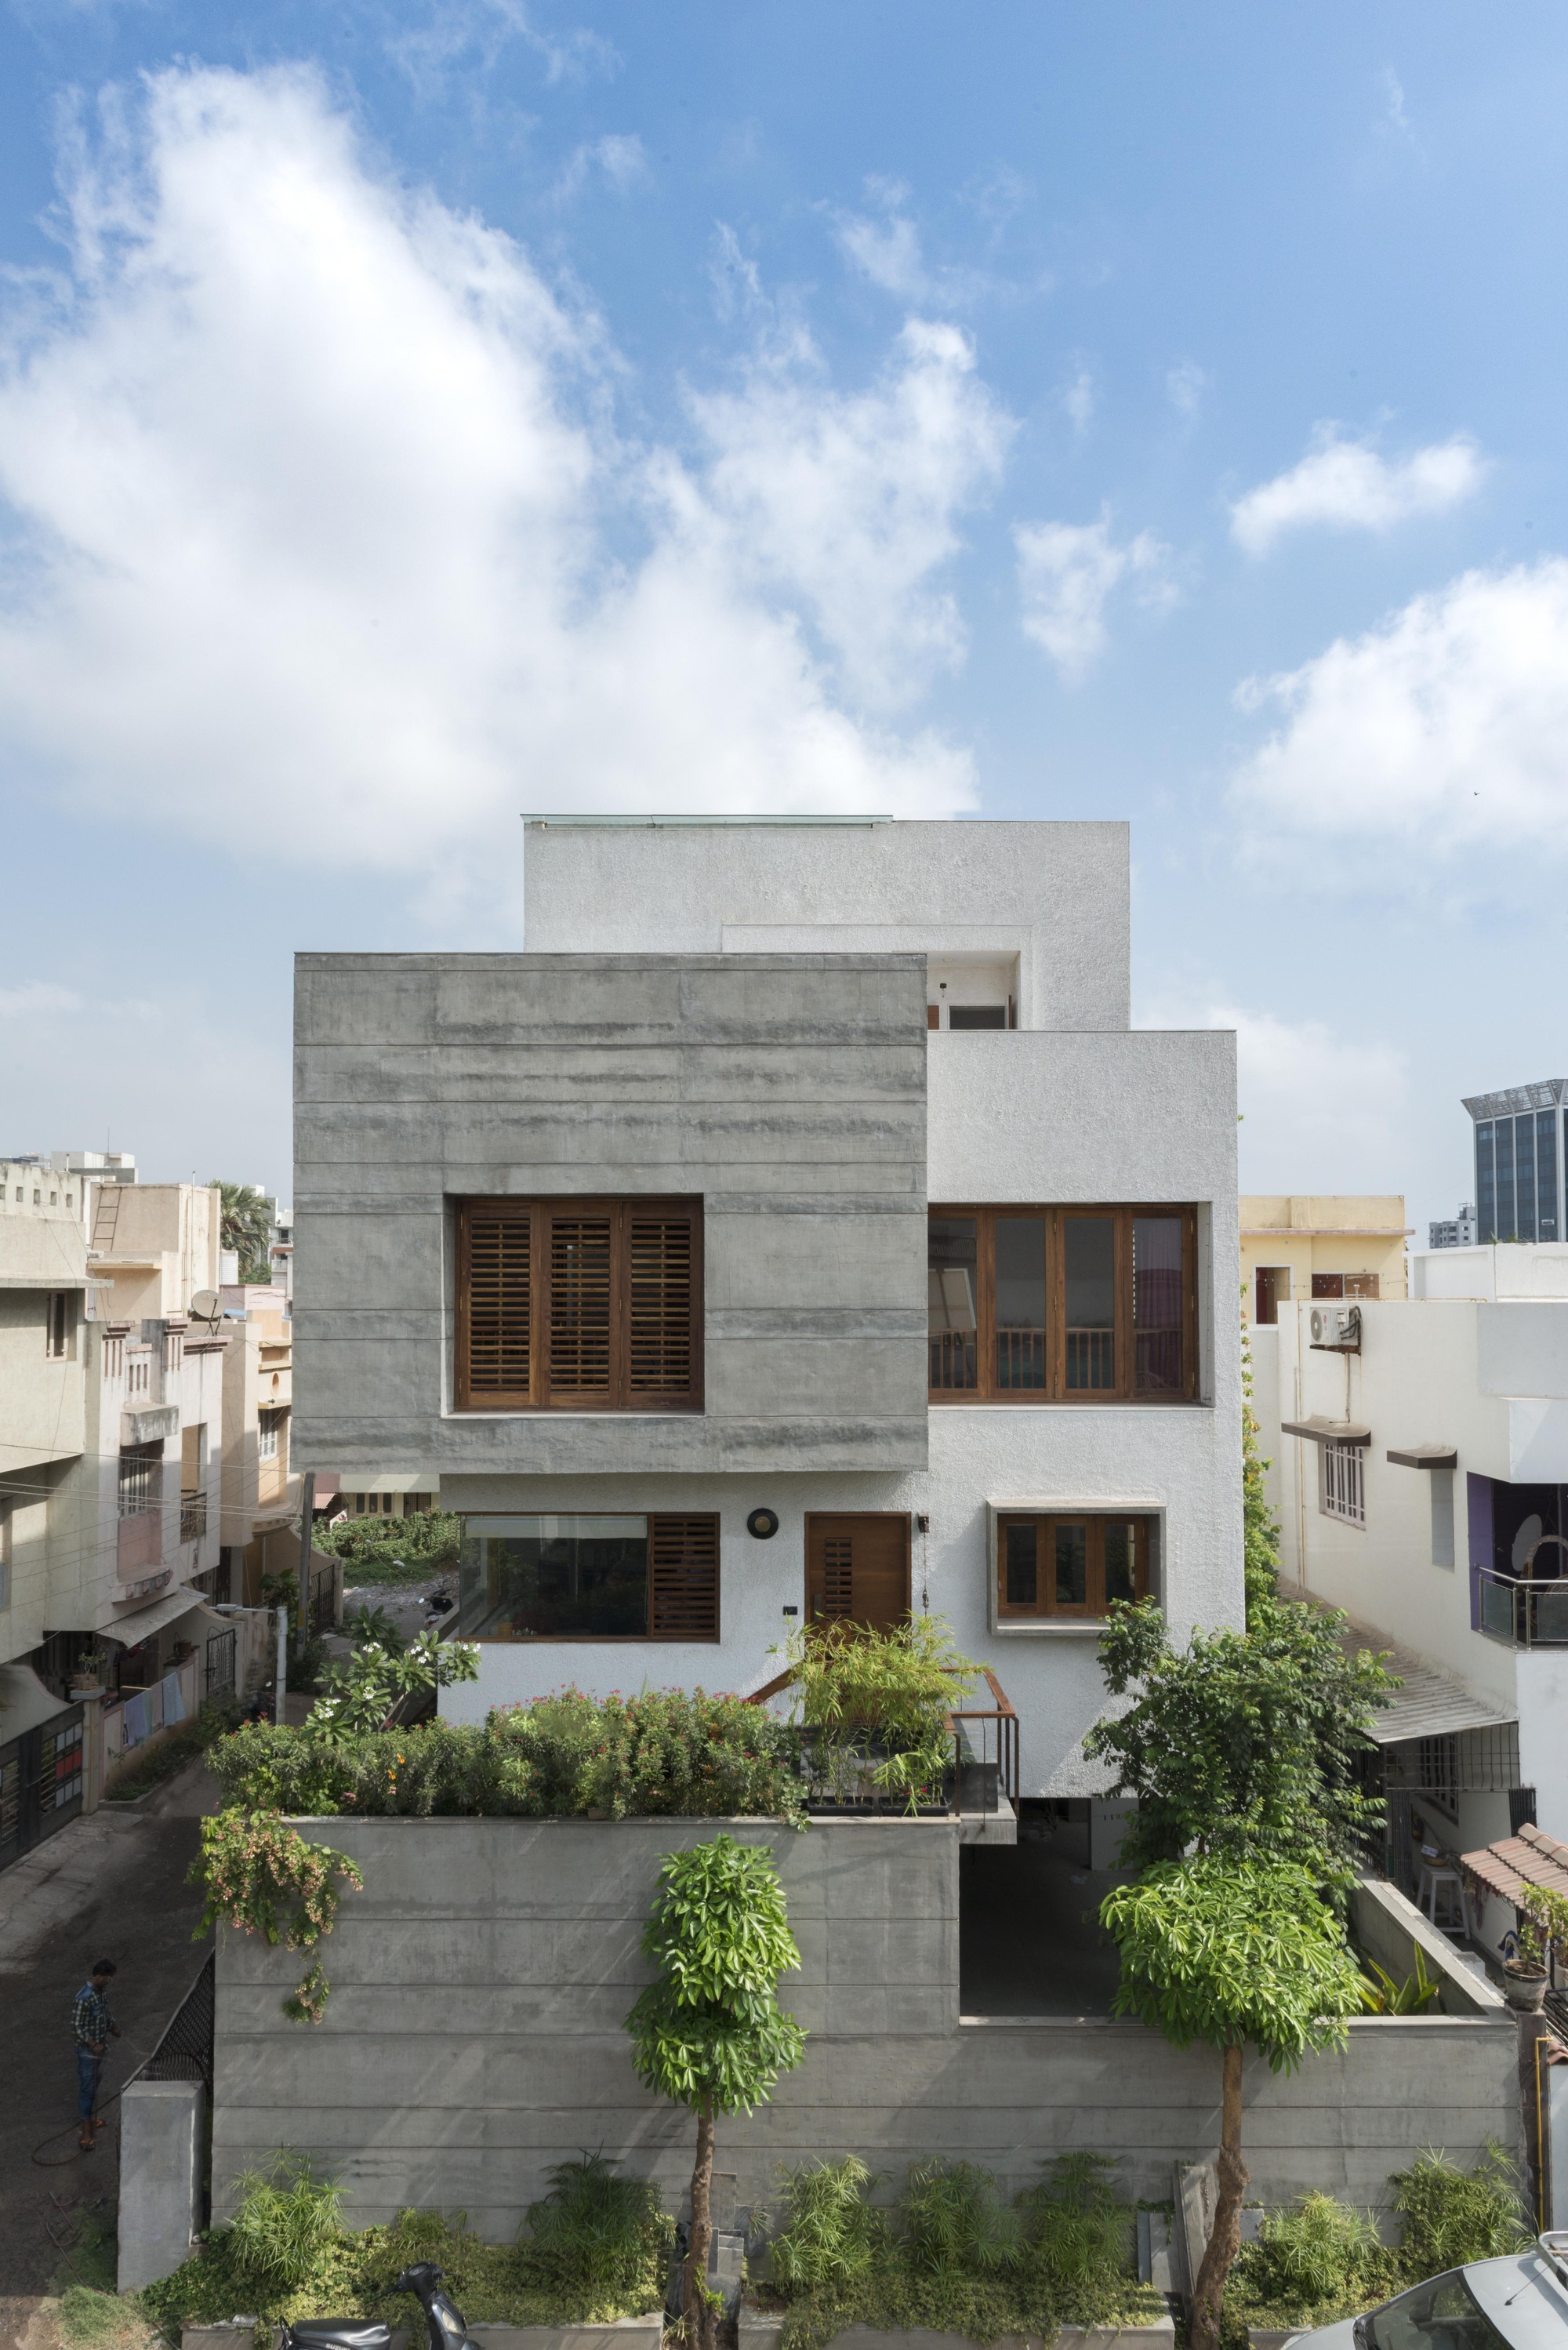 The H Cube House Studio Lagom Archdaily